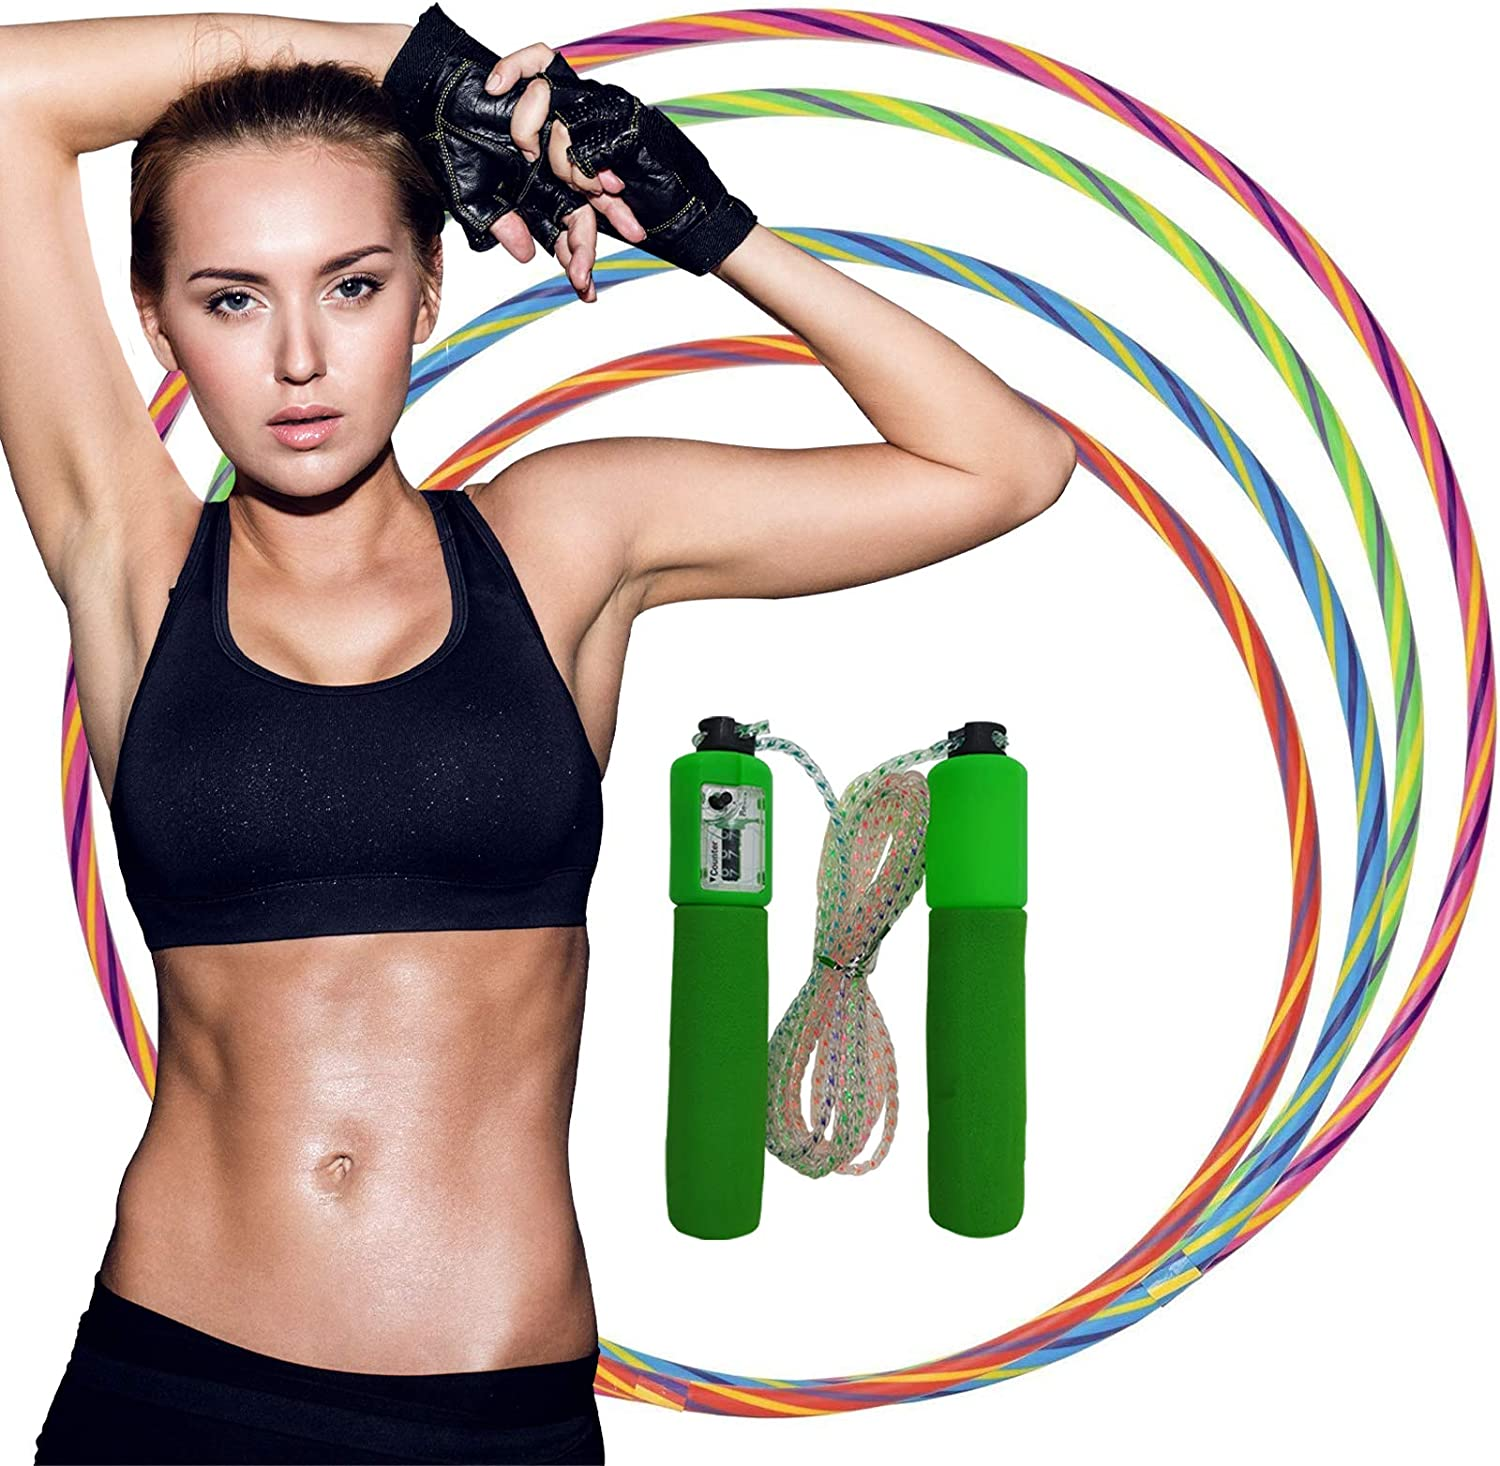 Medium /& Large With Free Skipping Rope Digital Sports Dance Rings in Small Multicolour Sporting Good Hula Hoops for Kids /& Adults Fitness Activity Hula Hoops GAX Sports Hot Shot Hula Hoops 3x